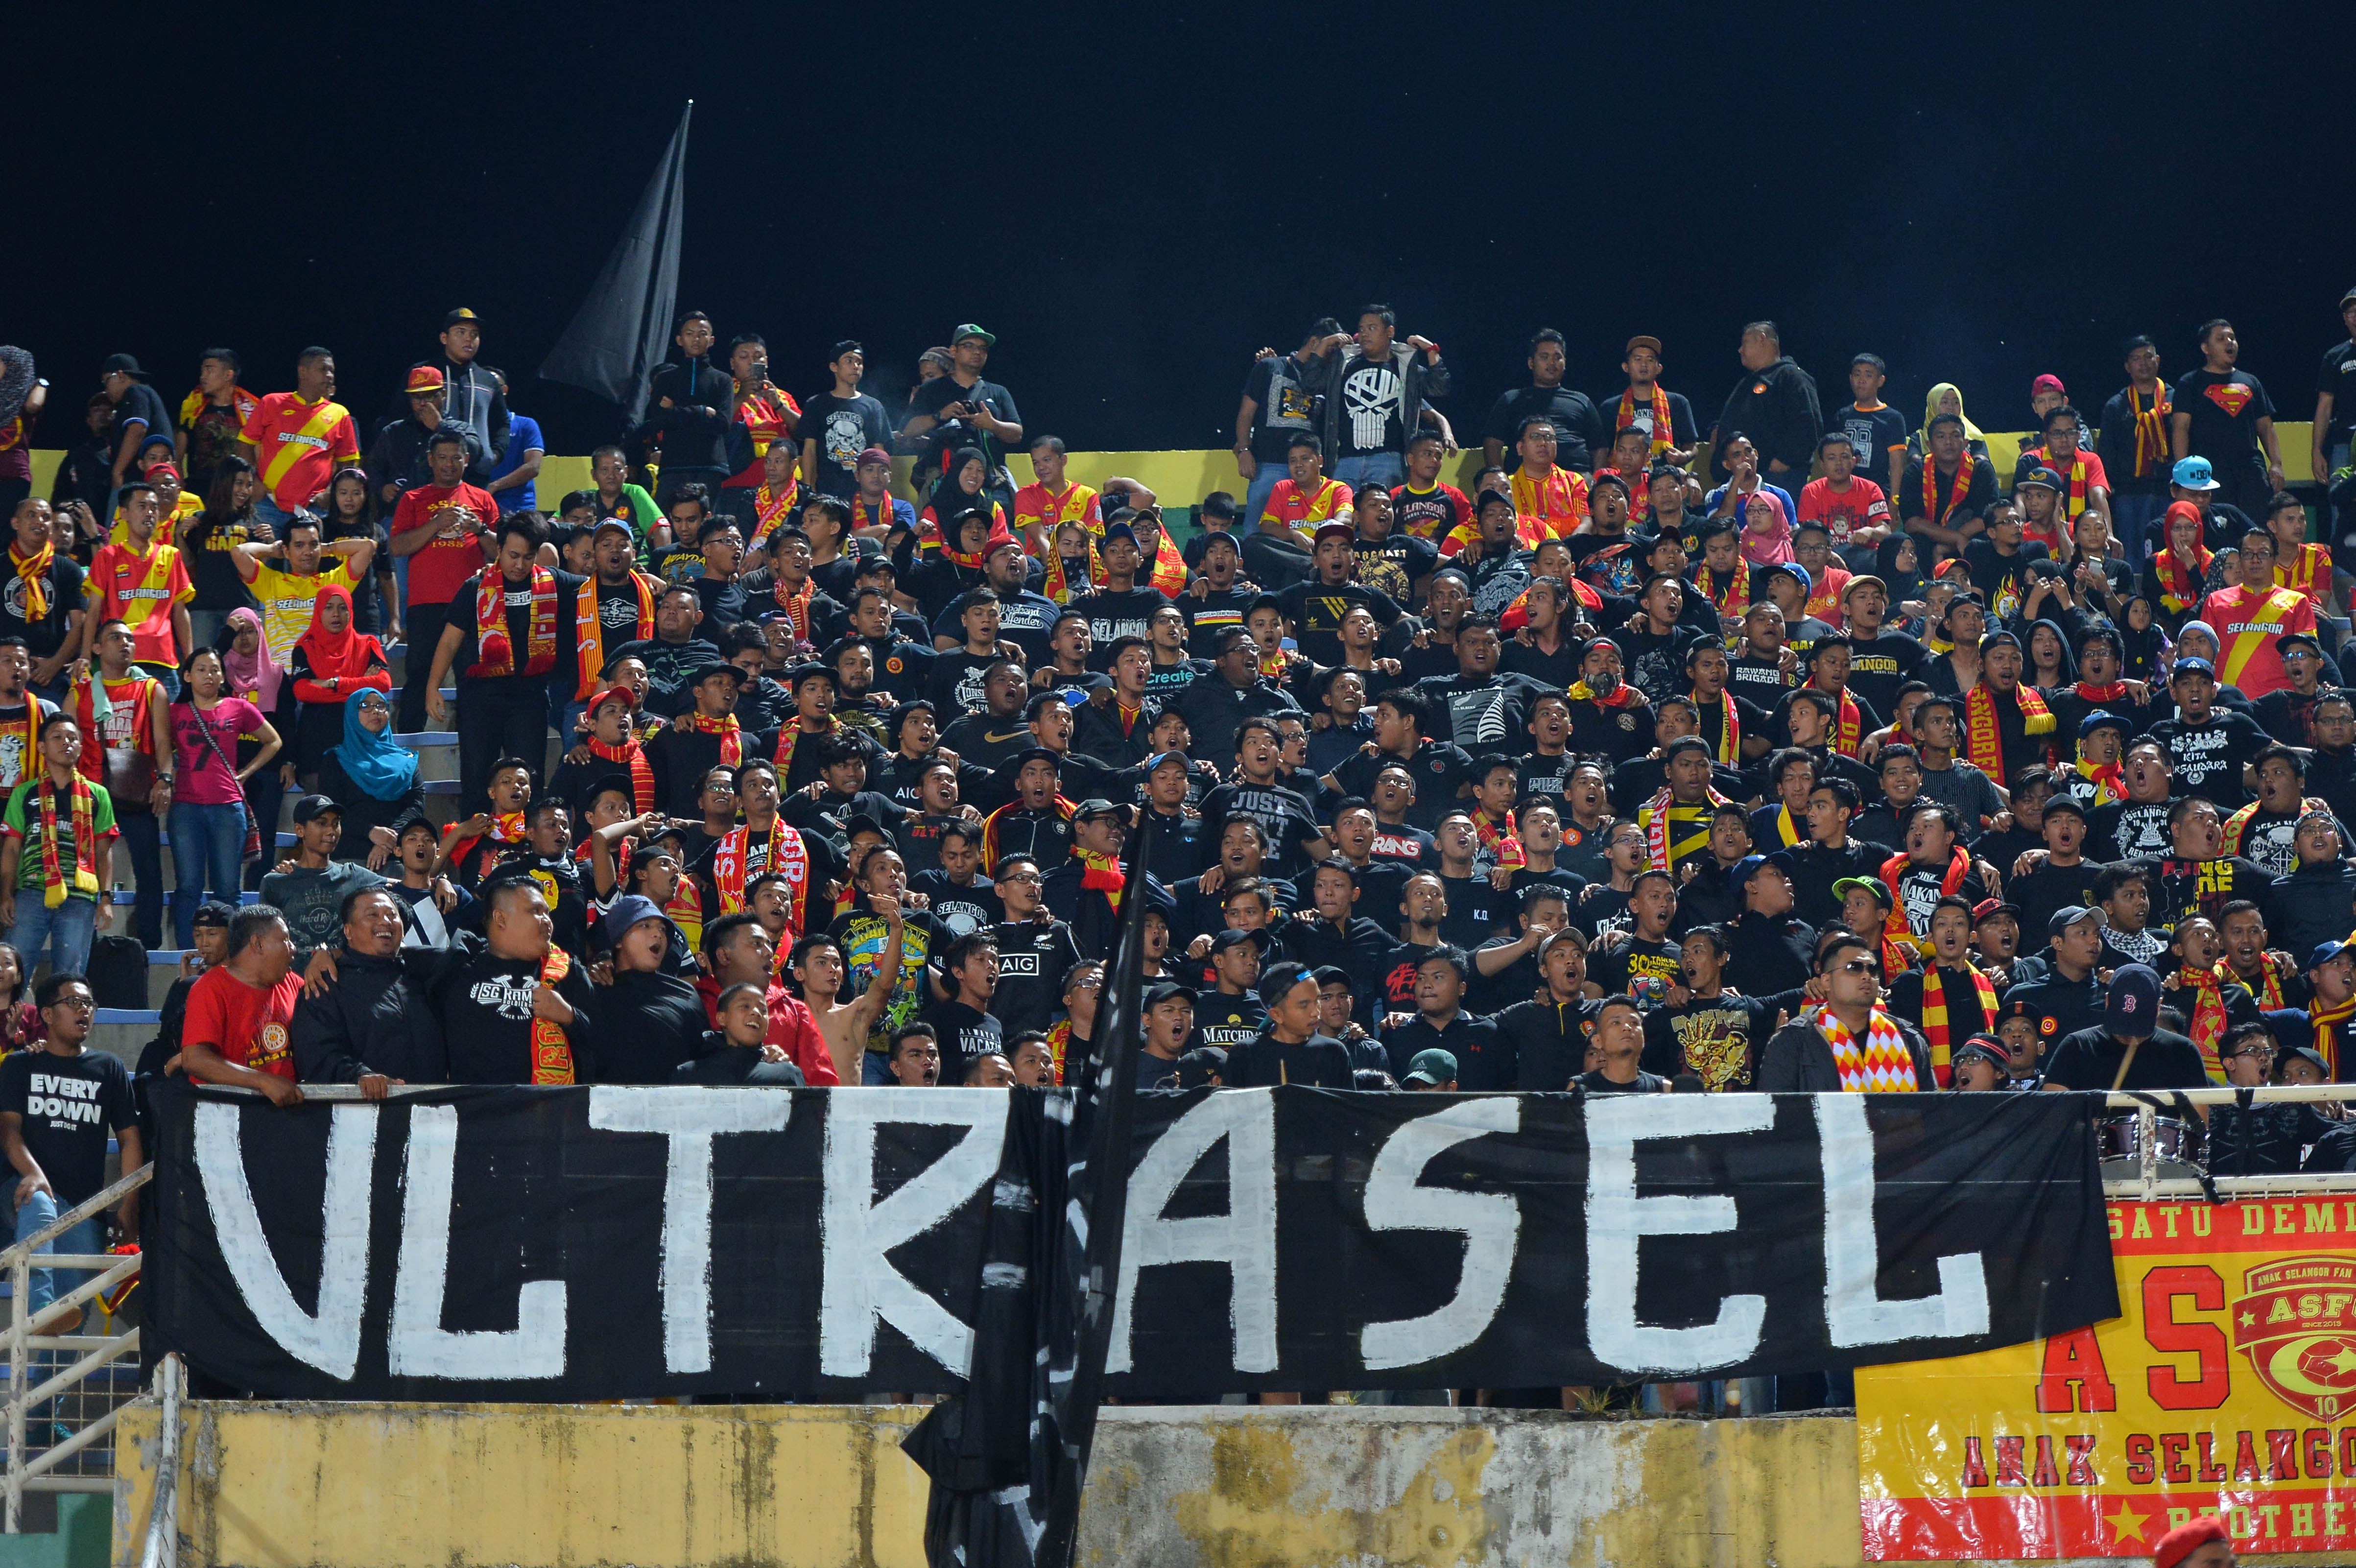 Selangor fans ultraSel protesting by wearing black during their match against Kedah 6/8/2016